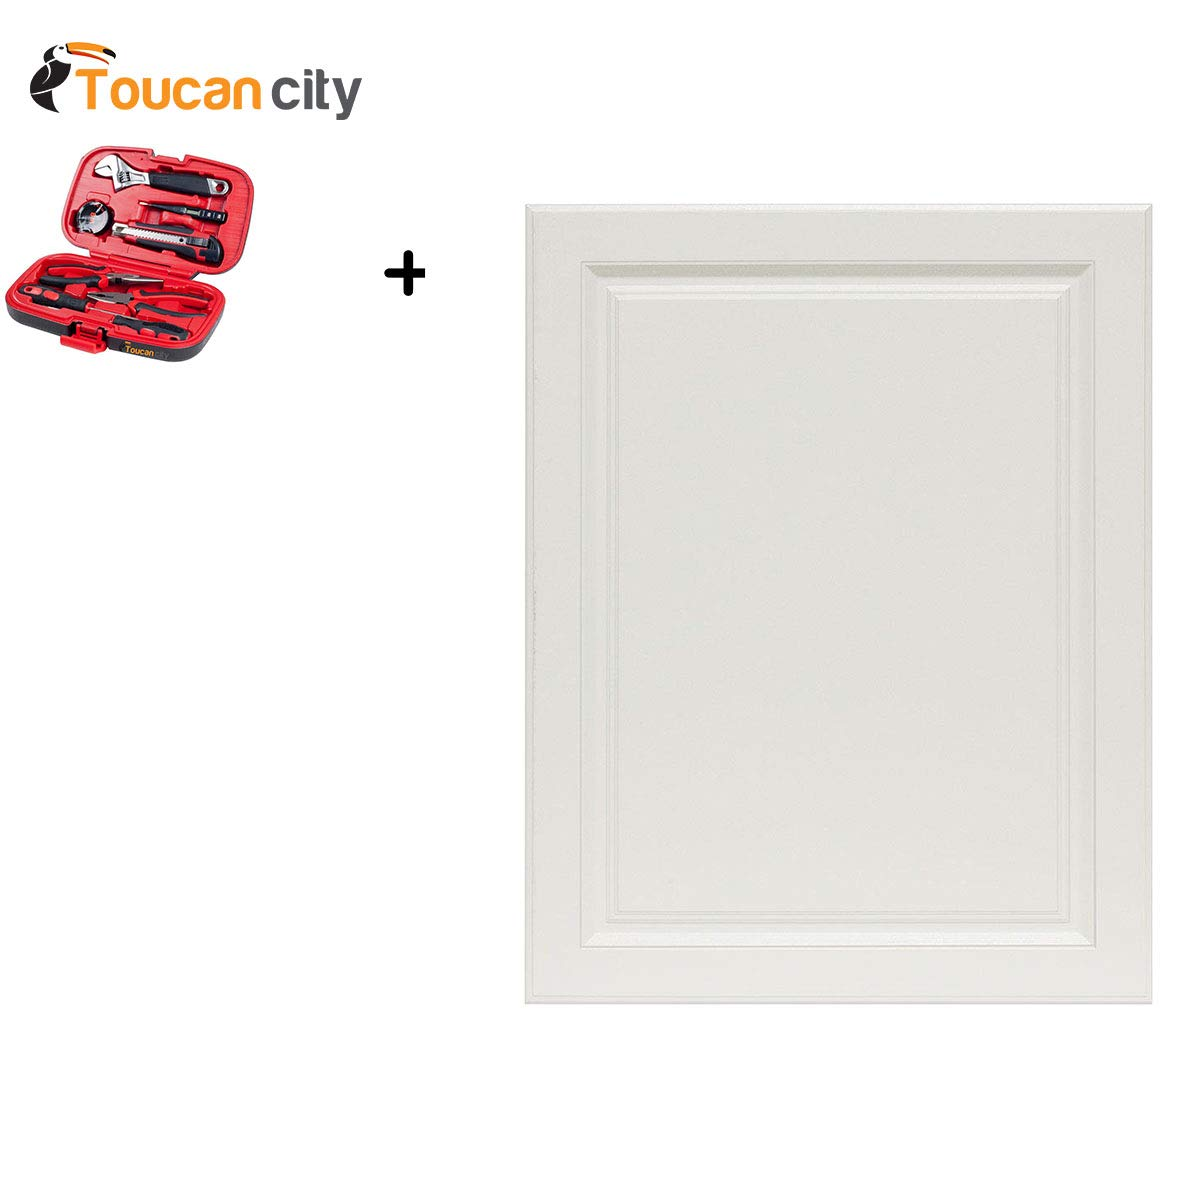 Toucan City Tool Kit (9-Piece) and Hampton Bay 0.71x29.37x23.05 in. Hampton Base Cabinet Decorative End Panel in Satin White KAEP2430-SW